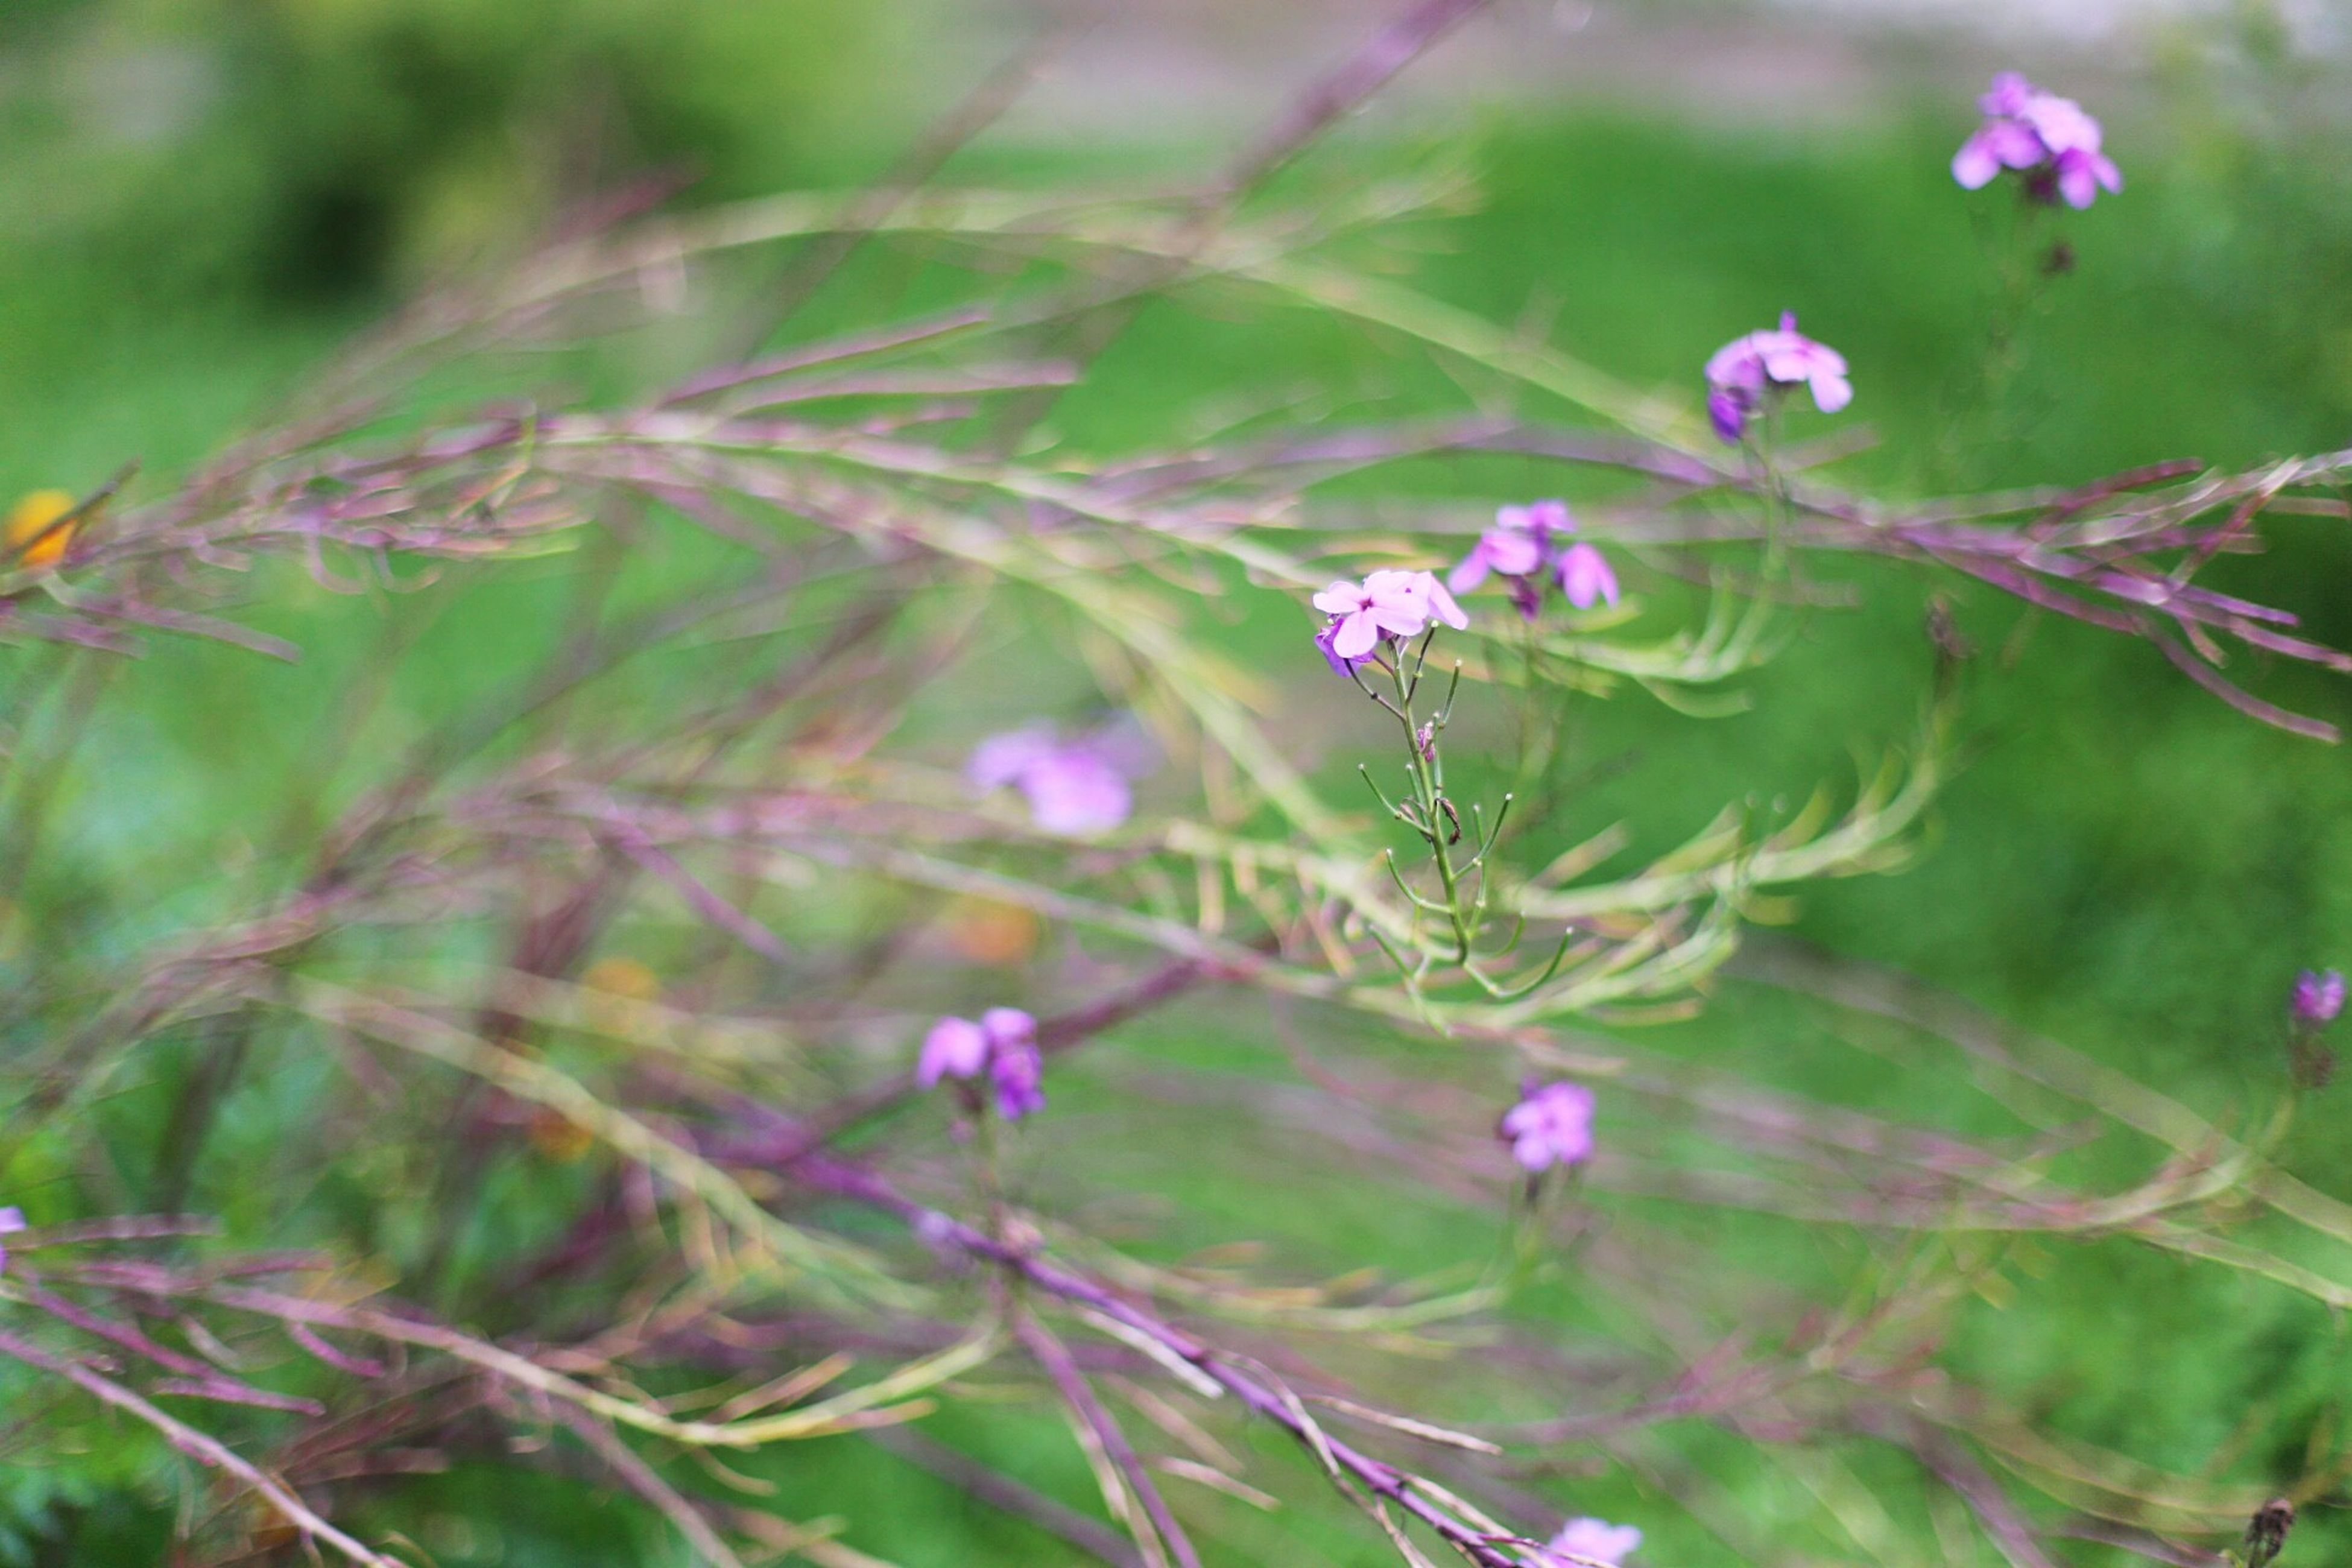 flower, freshness, growth, fragility, beauty in nature, close-up, focus on foreground, plant, nature, petal, purple, stem, blooming, leaf, selective focus, flower head, in bloom, blossom, day, outdoors